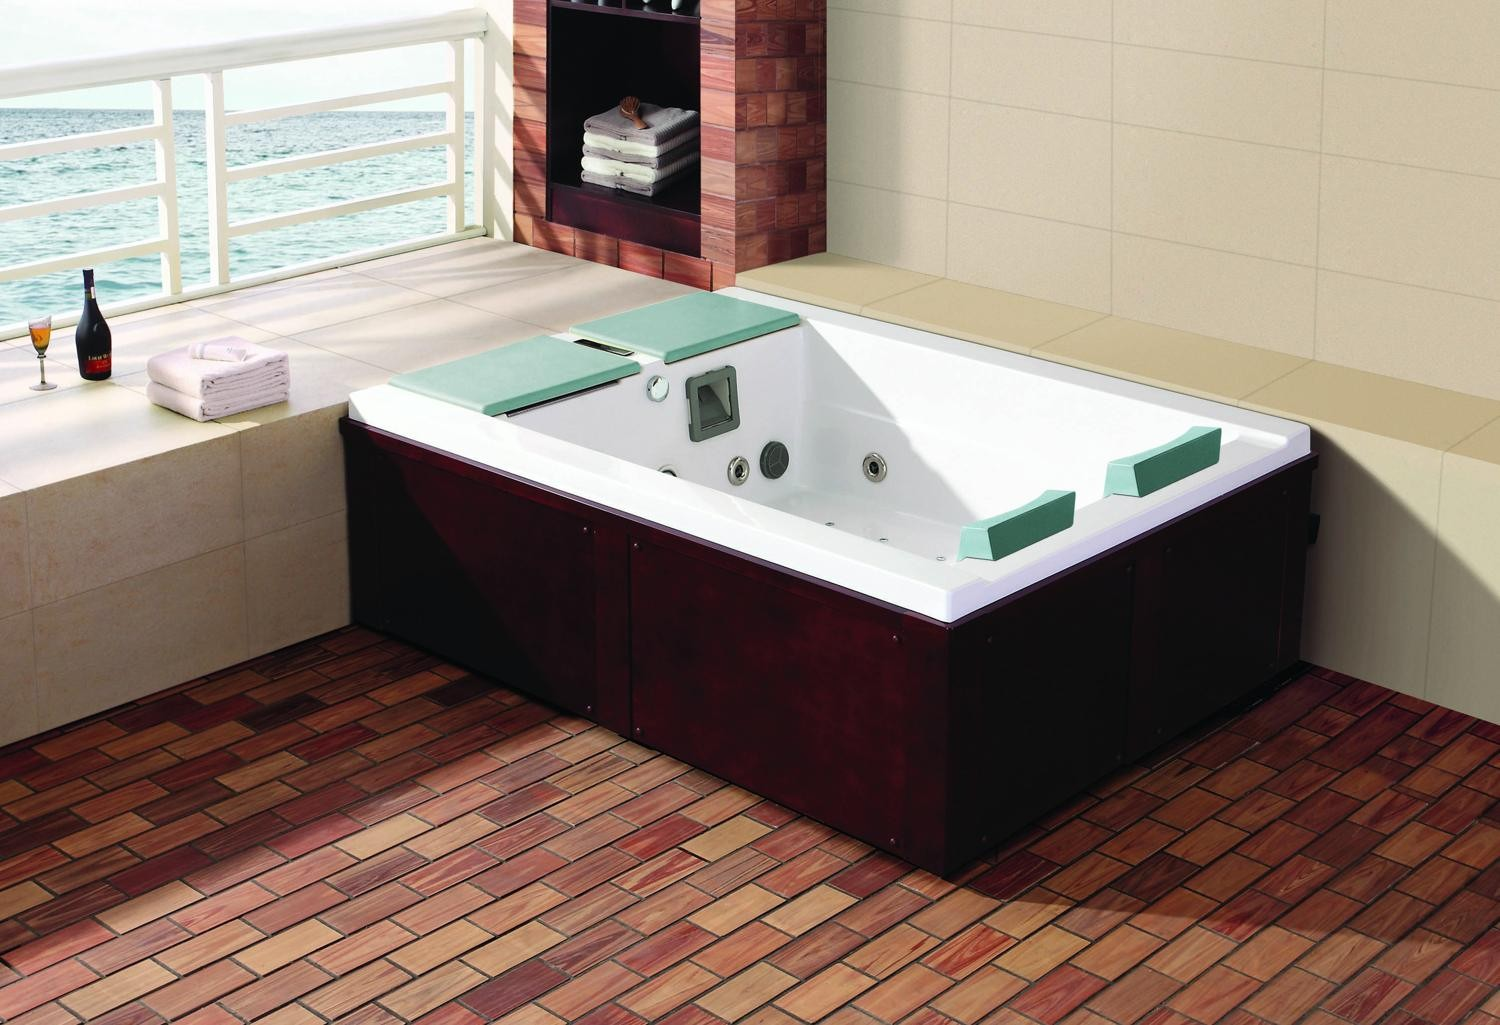 Best Jacuzzi Contemporary - Bathtub for Bathroom Ideas - lulacon.com